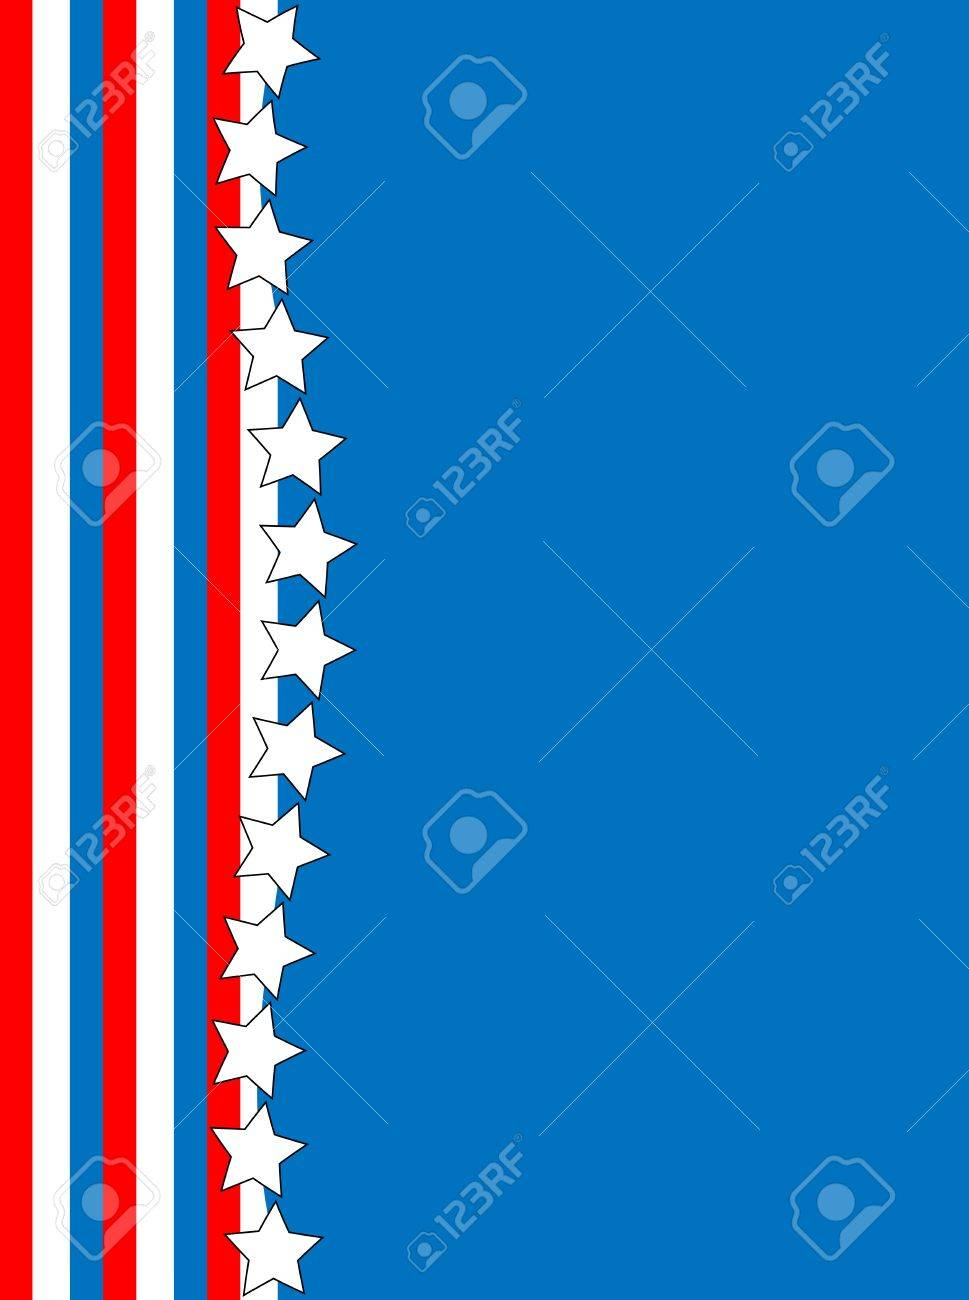 Red, White and blue patriotic frame or border with a striped and star background with copy space Stock Vector - 13092442